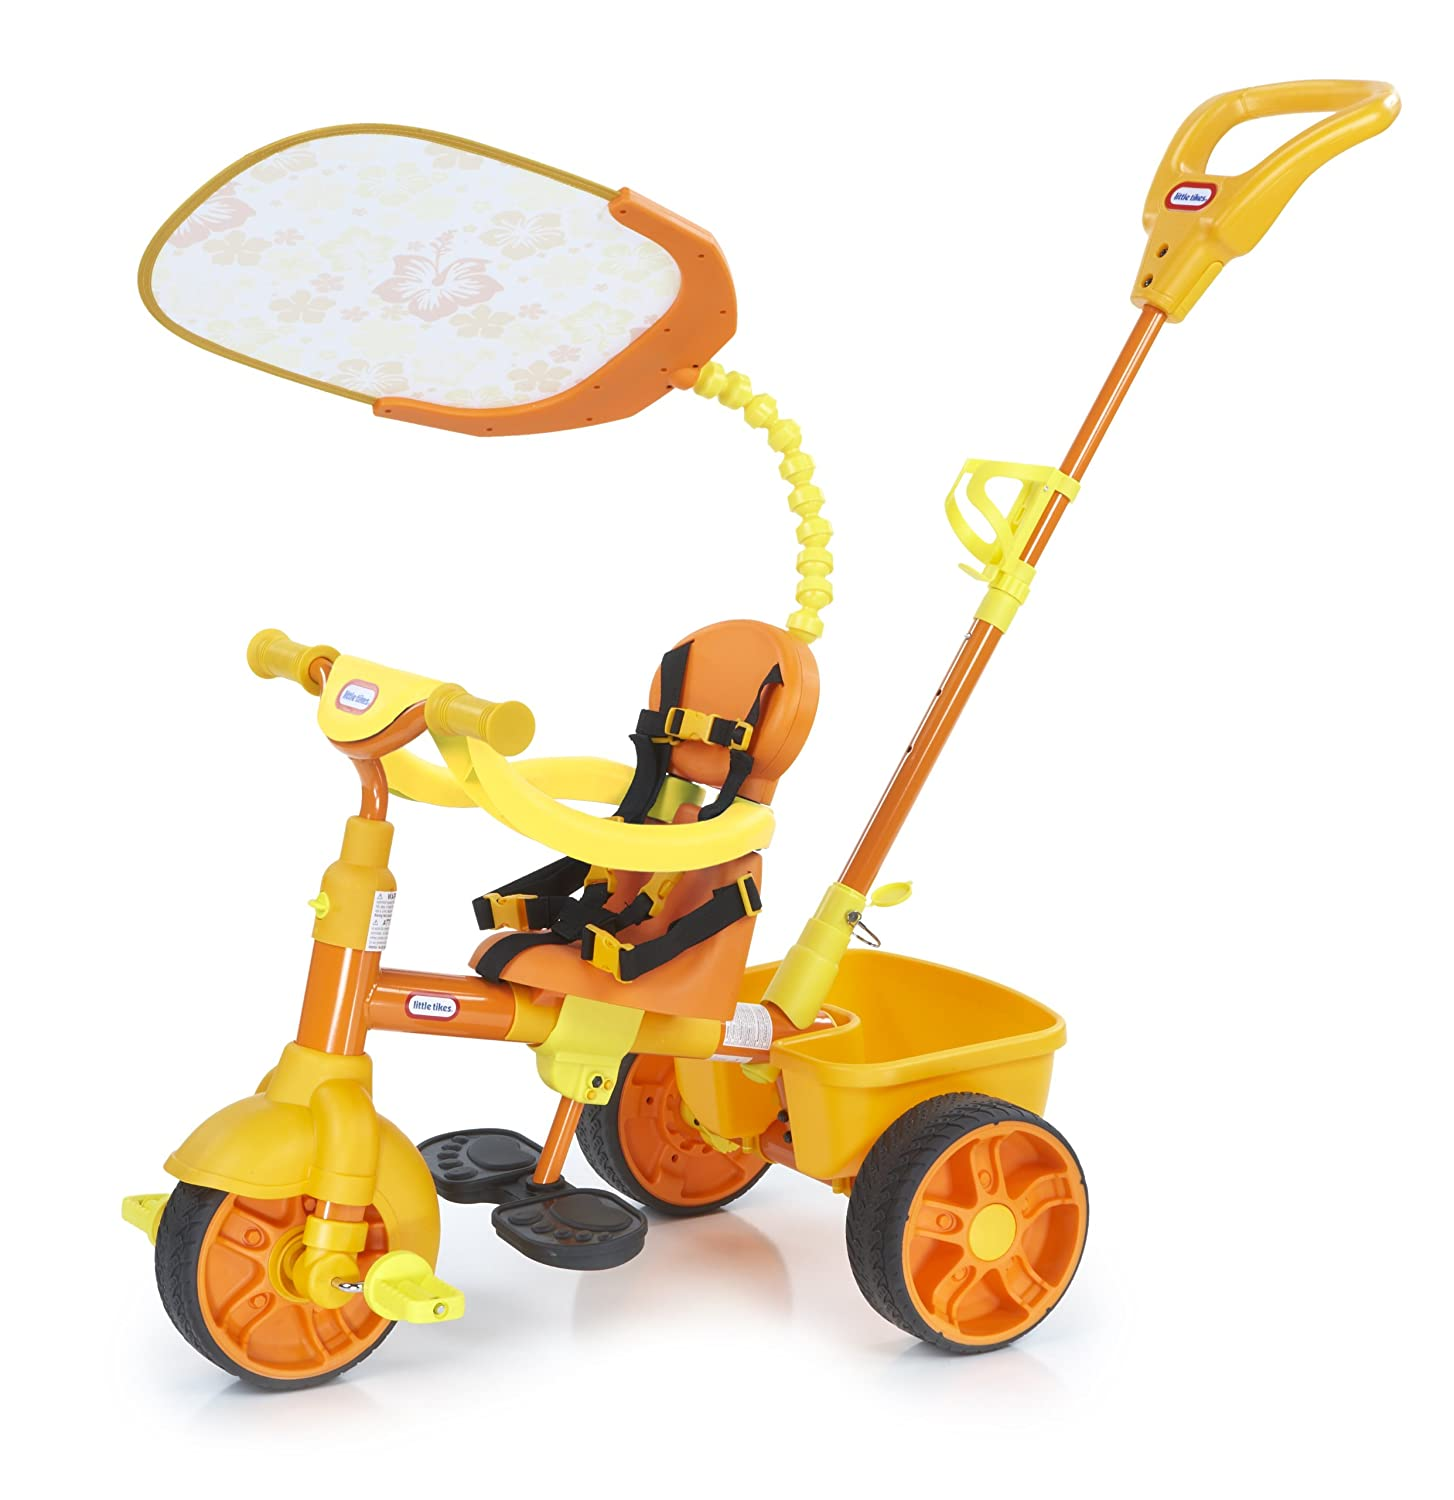 An Image of Little Tikes 4-in-1 Trike, Orange